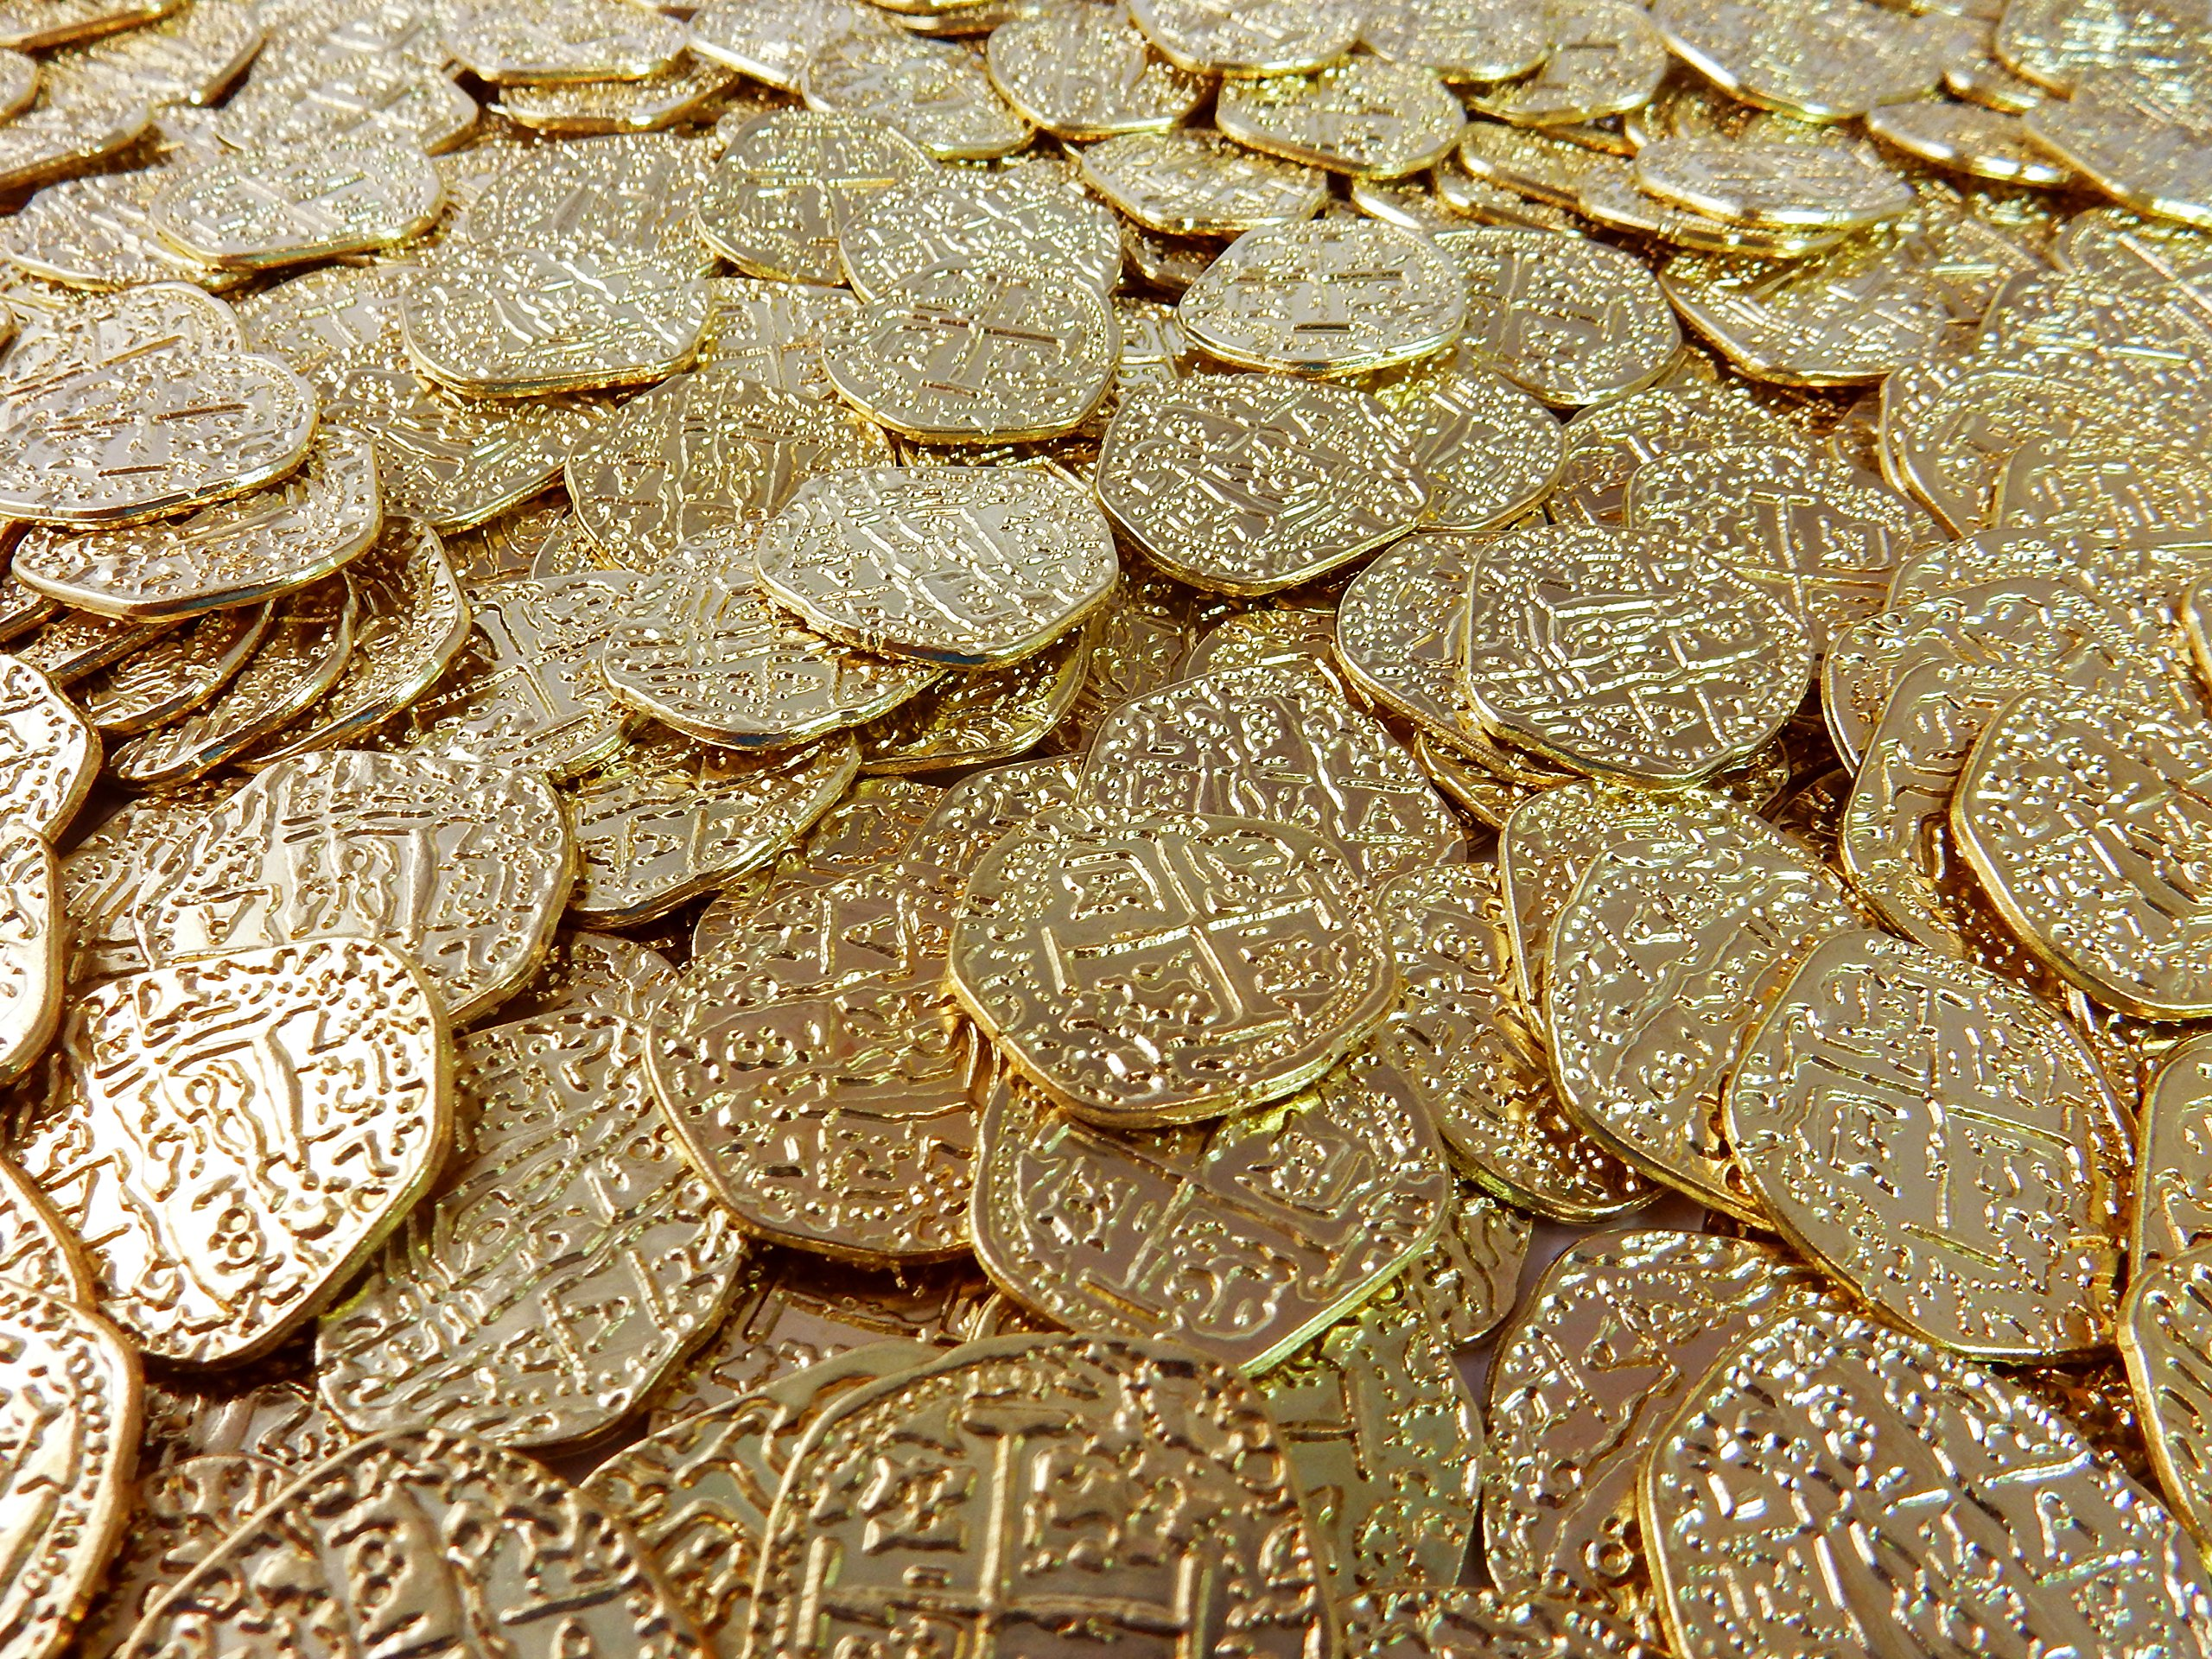 Beverly Oaks Metal Pirate Coins - 50 Gold Spanish Doubloon Replicas -  Fantasy Metal Coin Pirate Treasure